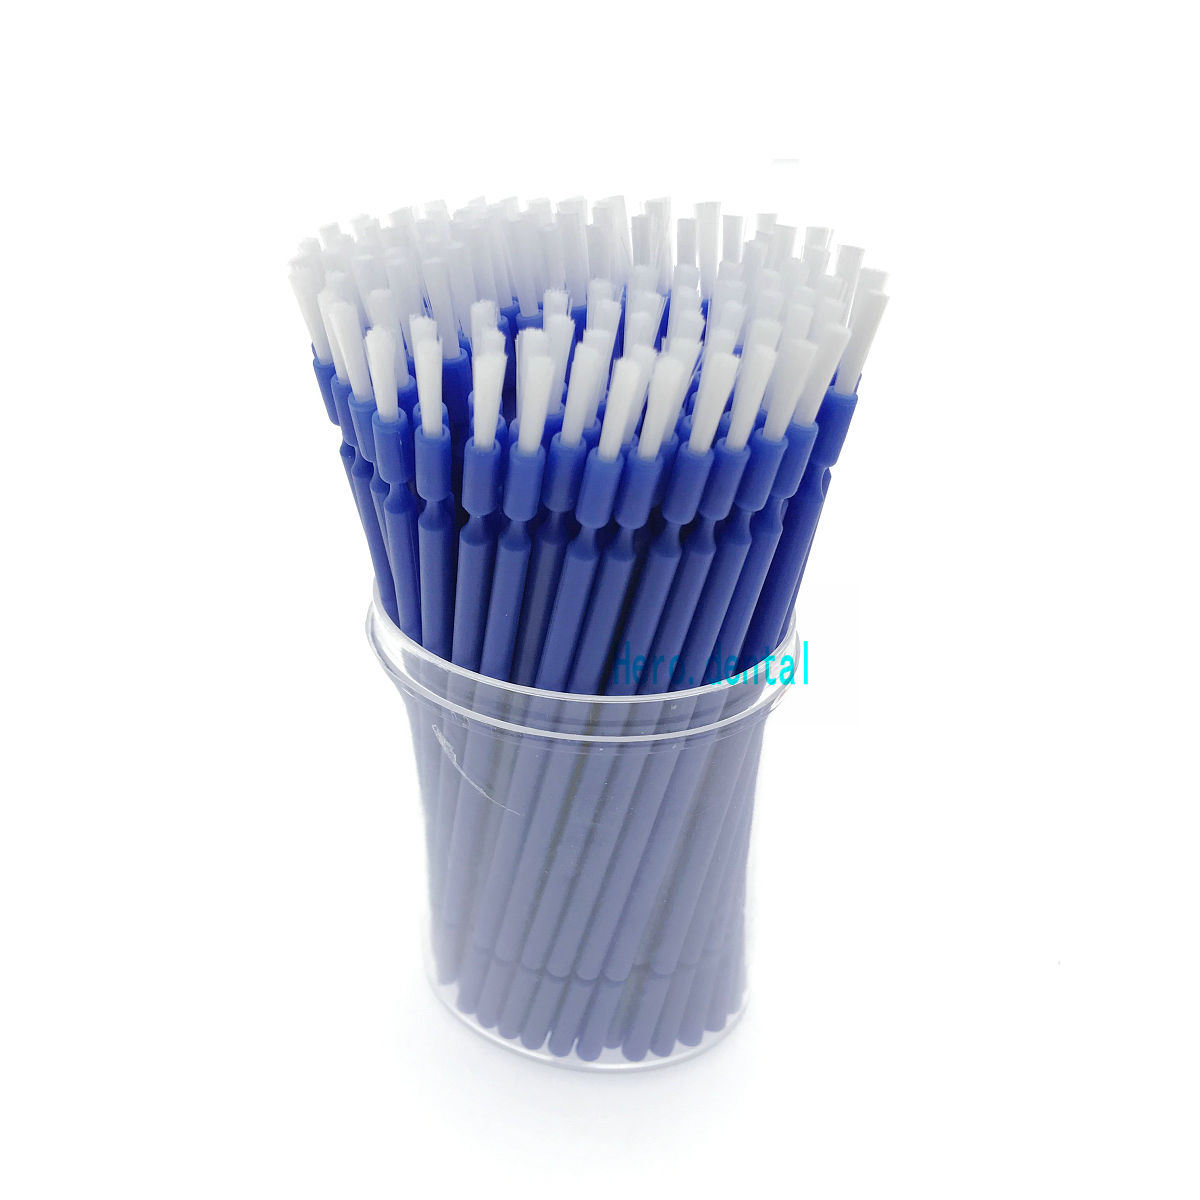 200pcs-dental-lab-long-disposable-micro-applicators-brushes-dental-brush